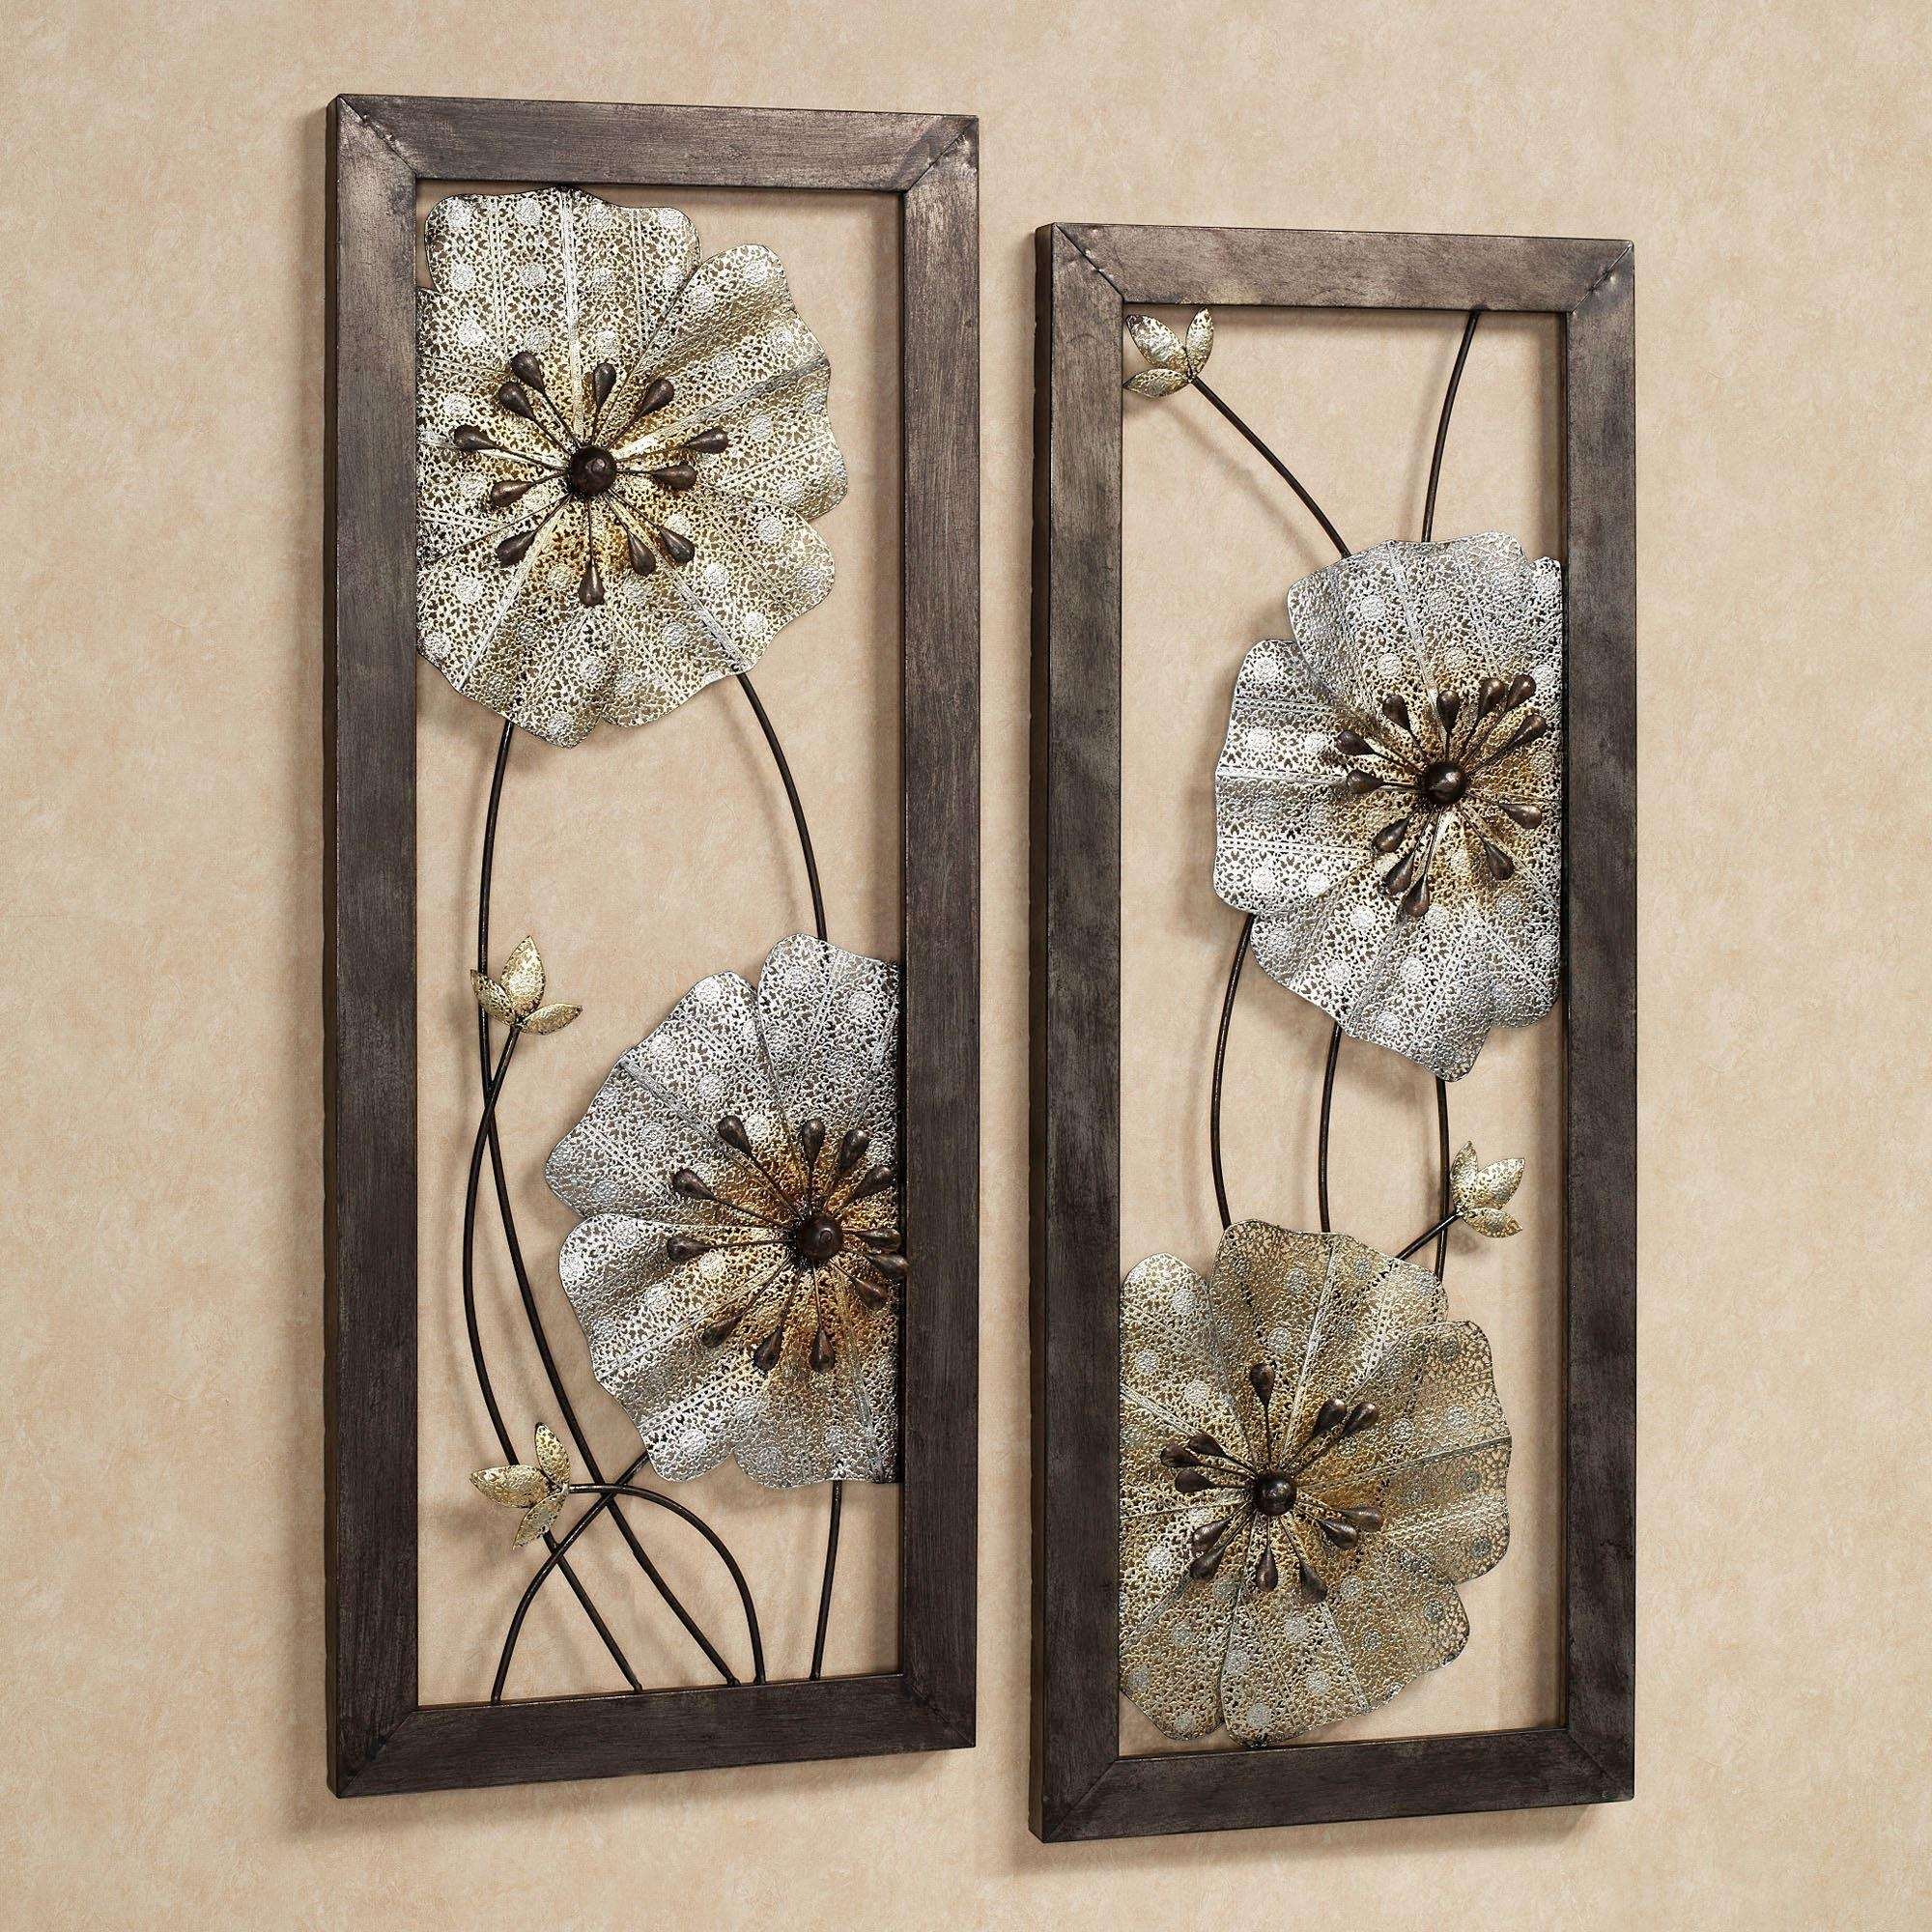 Malacia Openwork Floral Metal Wall Art Set Inside Metallic Wall Art (View 2 of 20)